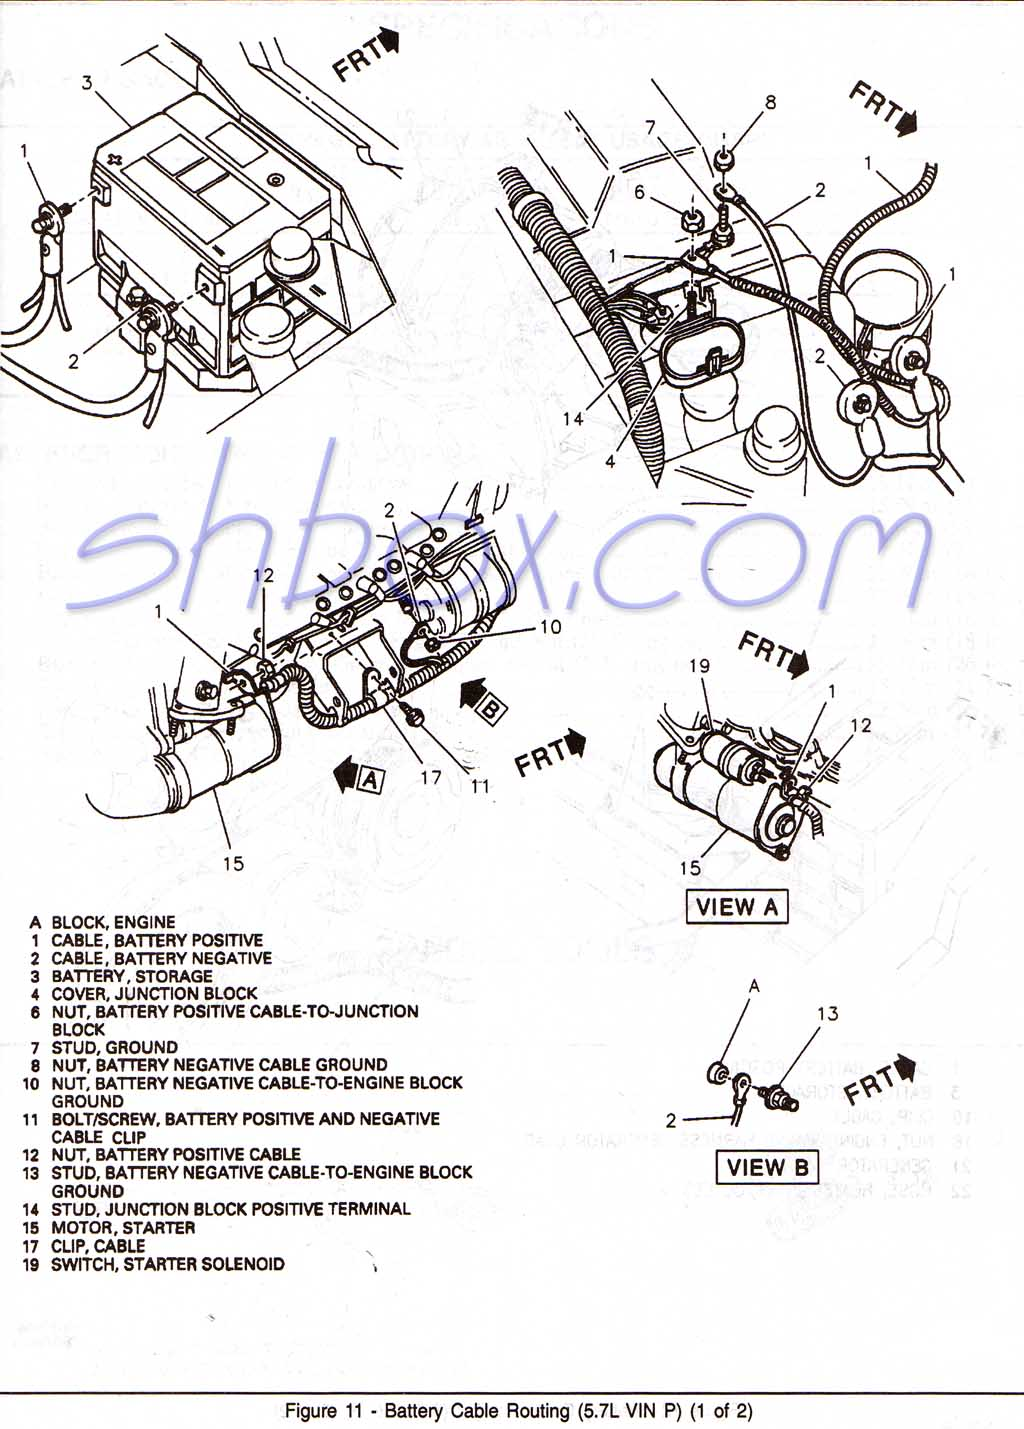 Honda Odyssey Engine Performance Wiring Diagram